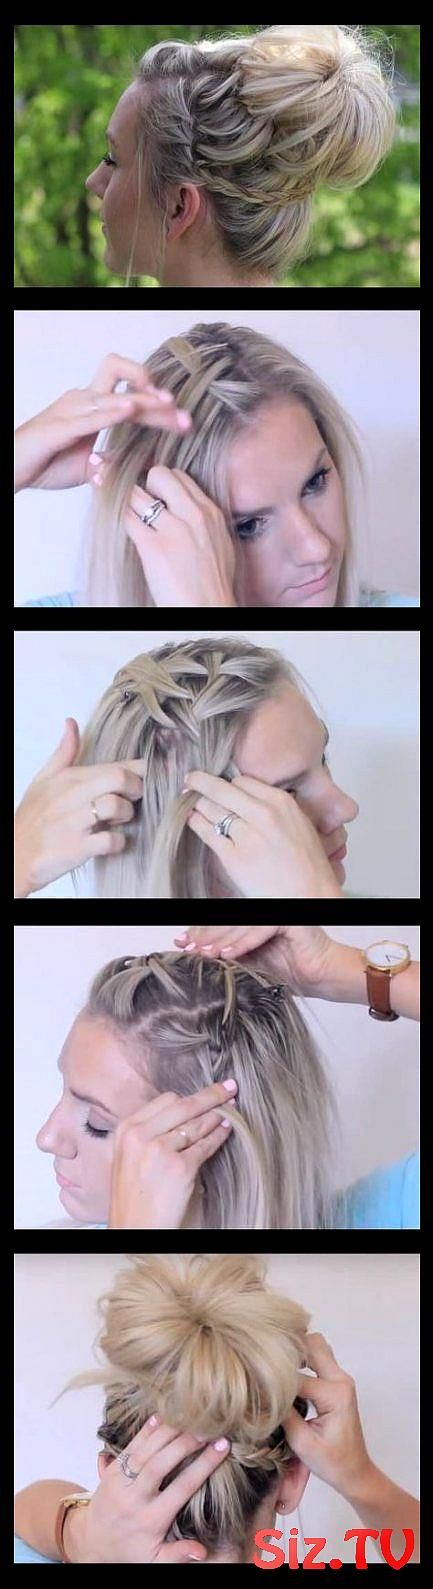 57 Ideas Hairstyles For Medium Length Hair With Headband Messy Buns 57 Ideas Hai...